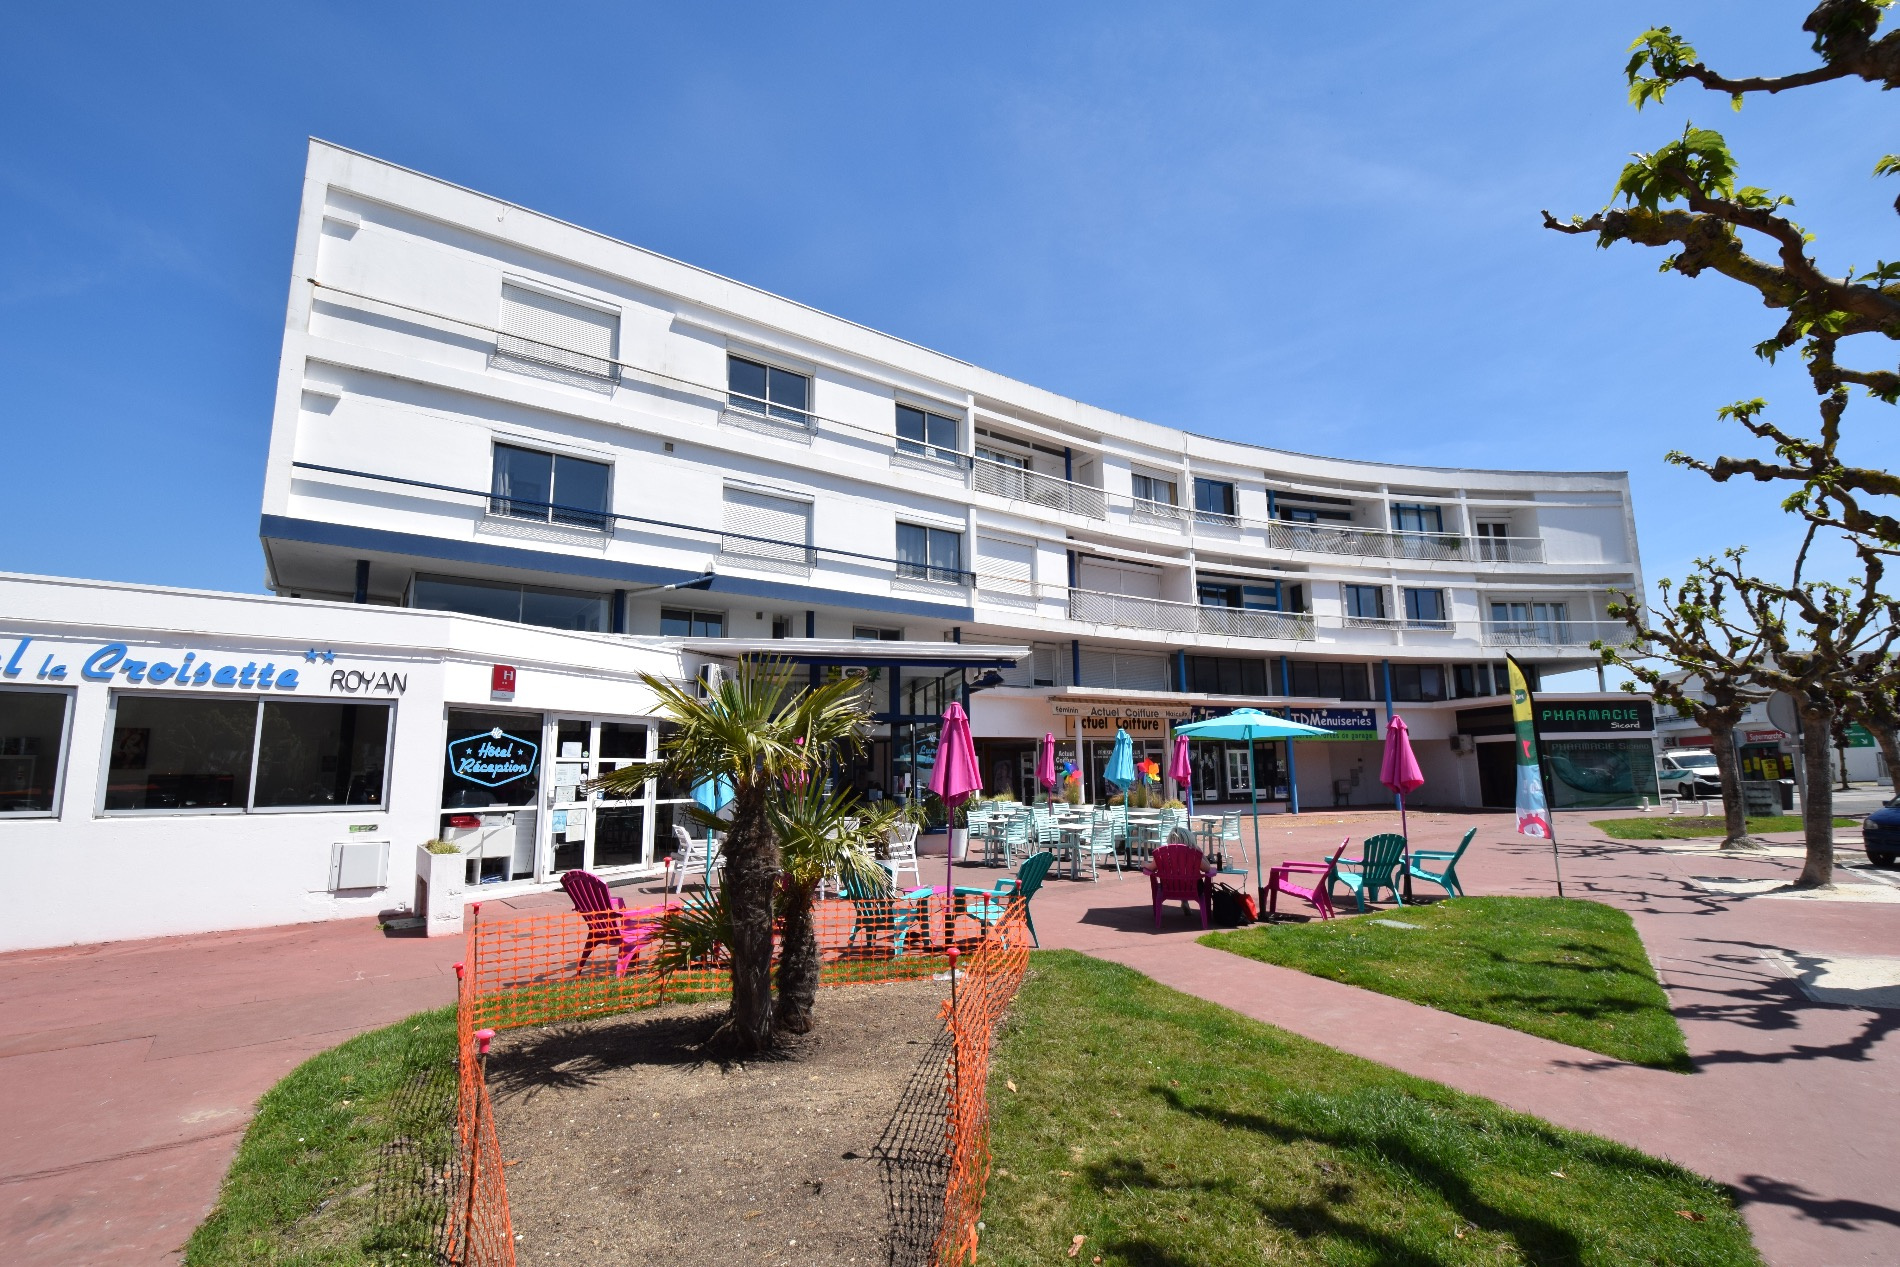 Vente appartement centre ville de royan - Appartement de ville anton bazaliiskii ...